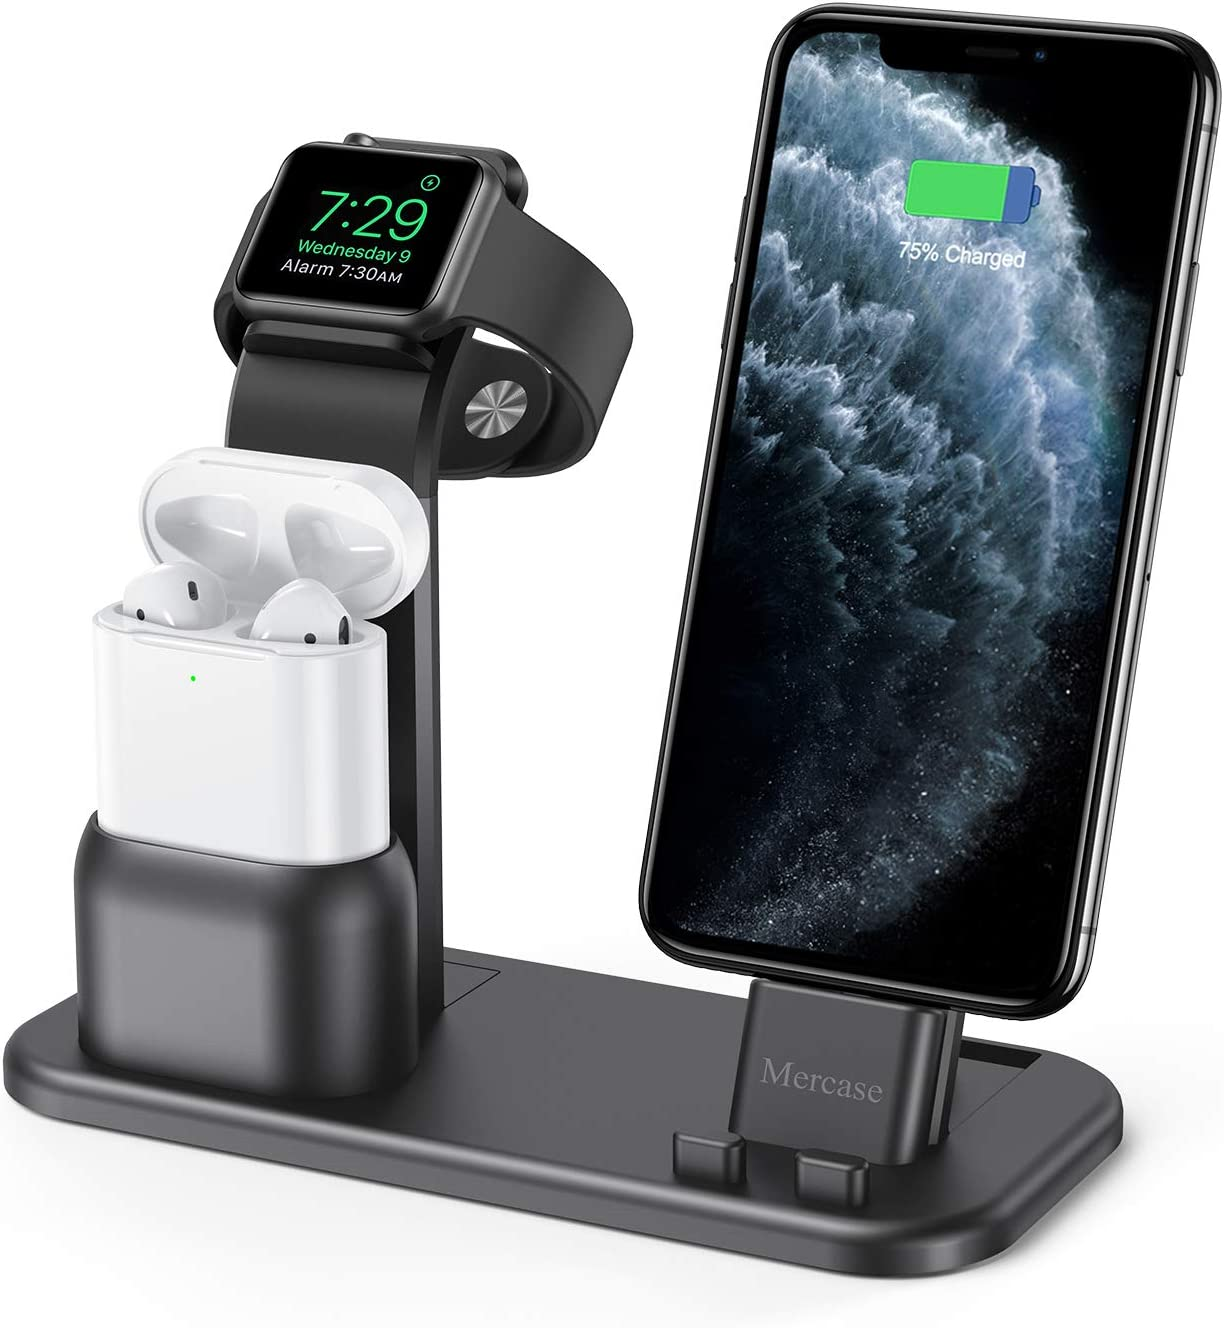 Mercase Apple Charging Station,3 in 1 Aluminum Charging Dock for iPhone Apple Watch and AirPods,Compatible with AirPods,iWatch Series SE/6/5/4/3/2/1,iPhone 11/ Xs/X Max/XR/X/8/8Plus/7(Space Grey)